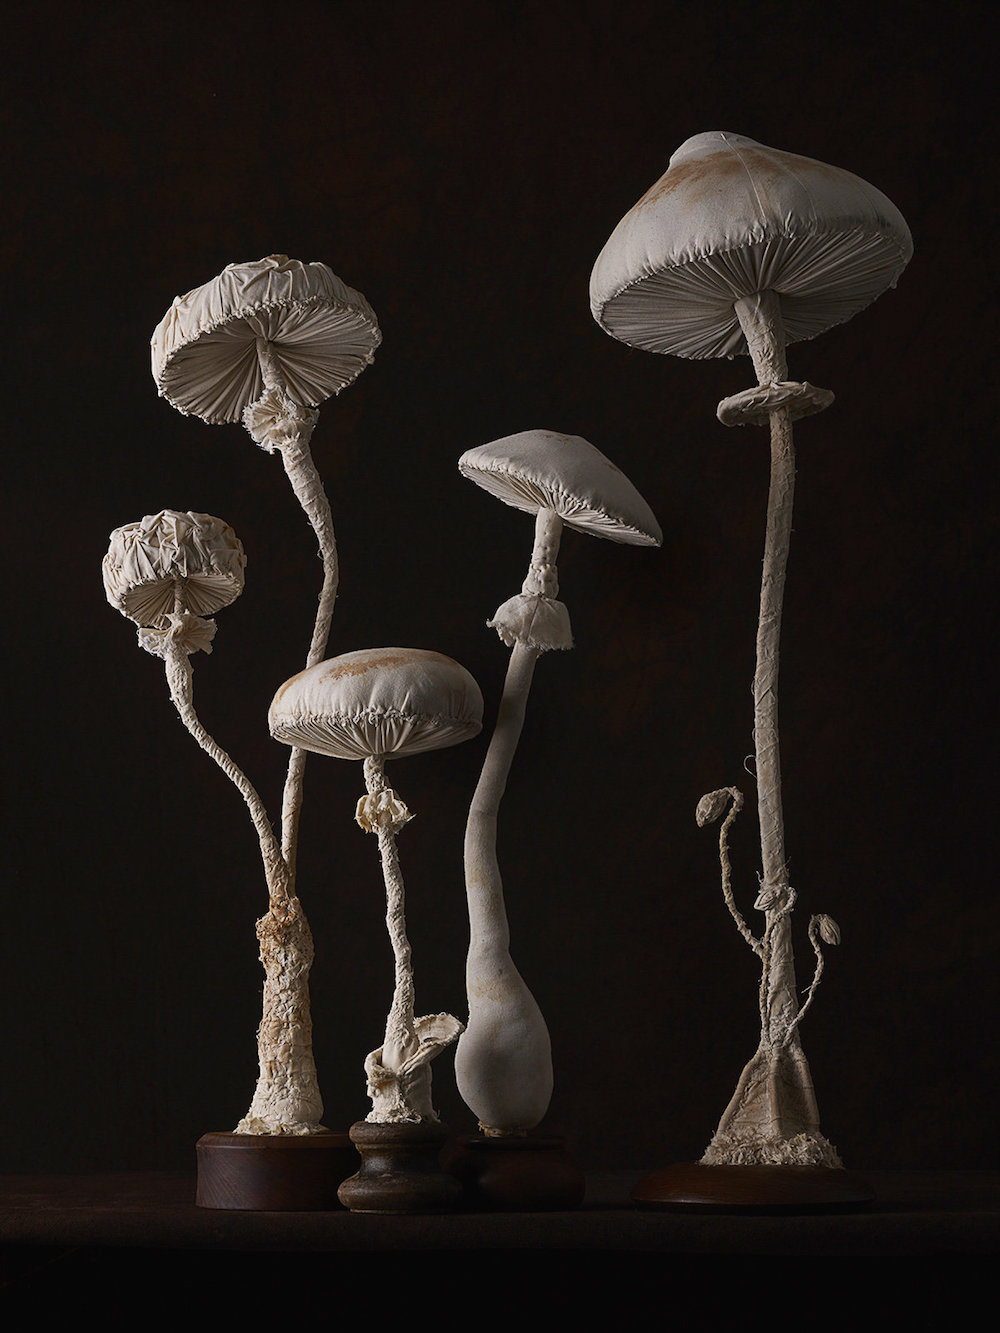 Sculptures of mushrooms toadstools, created from vintage fabrics 04